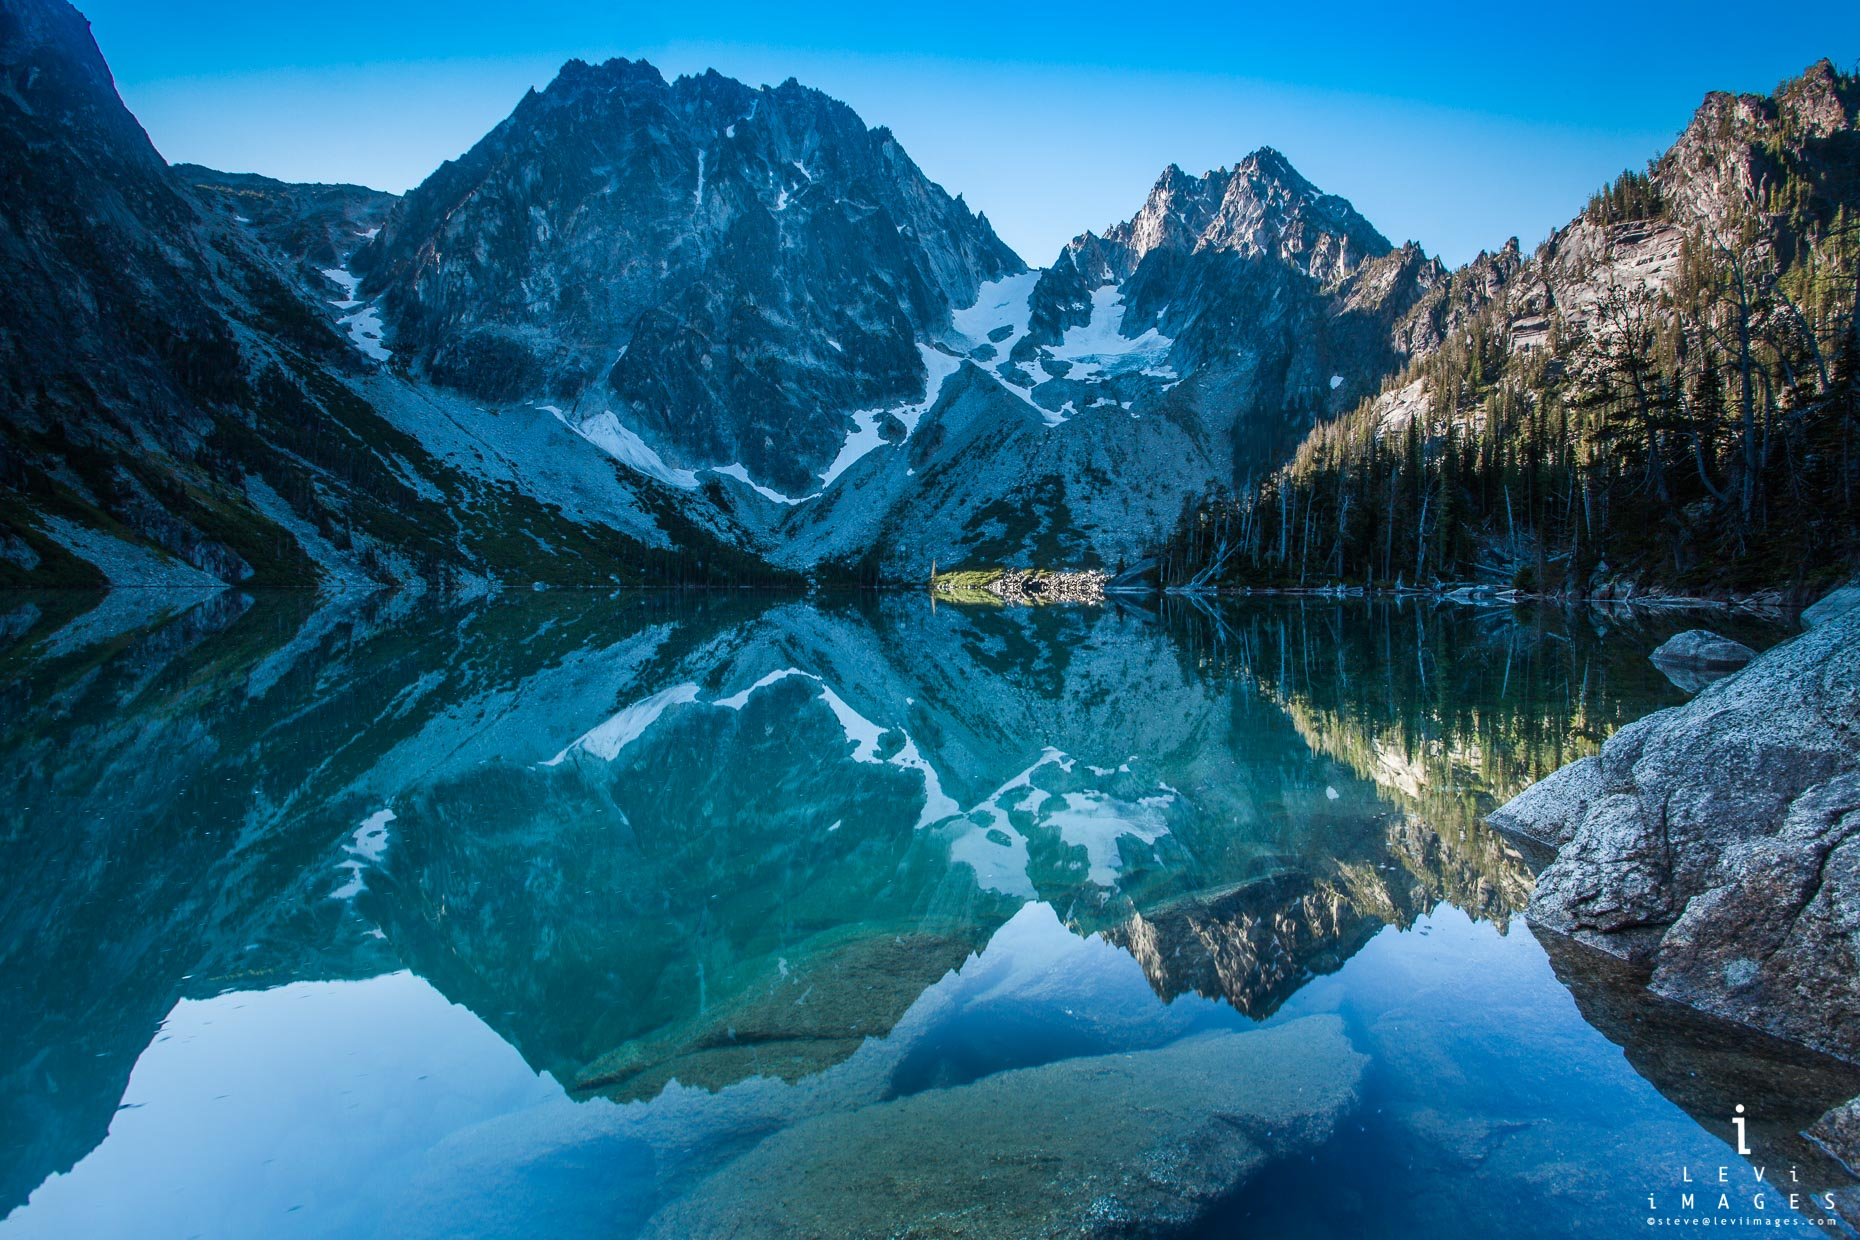 Dragontail Peak reflected in Lake Colchuck, The Enchantments, Washington